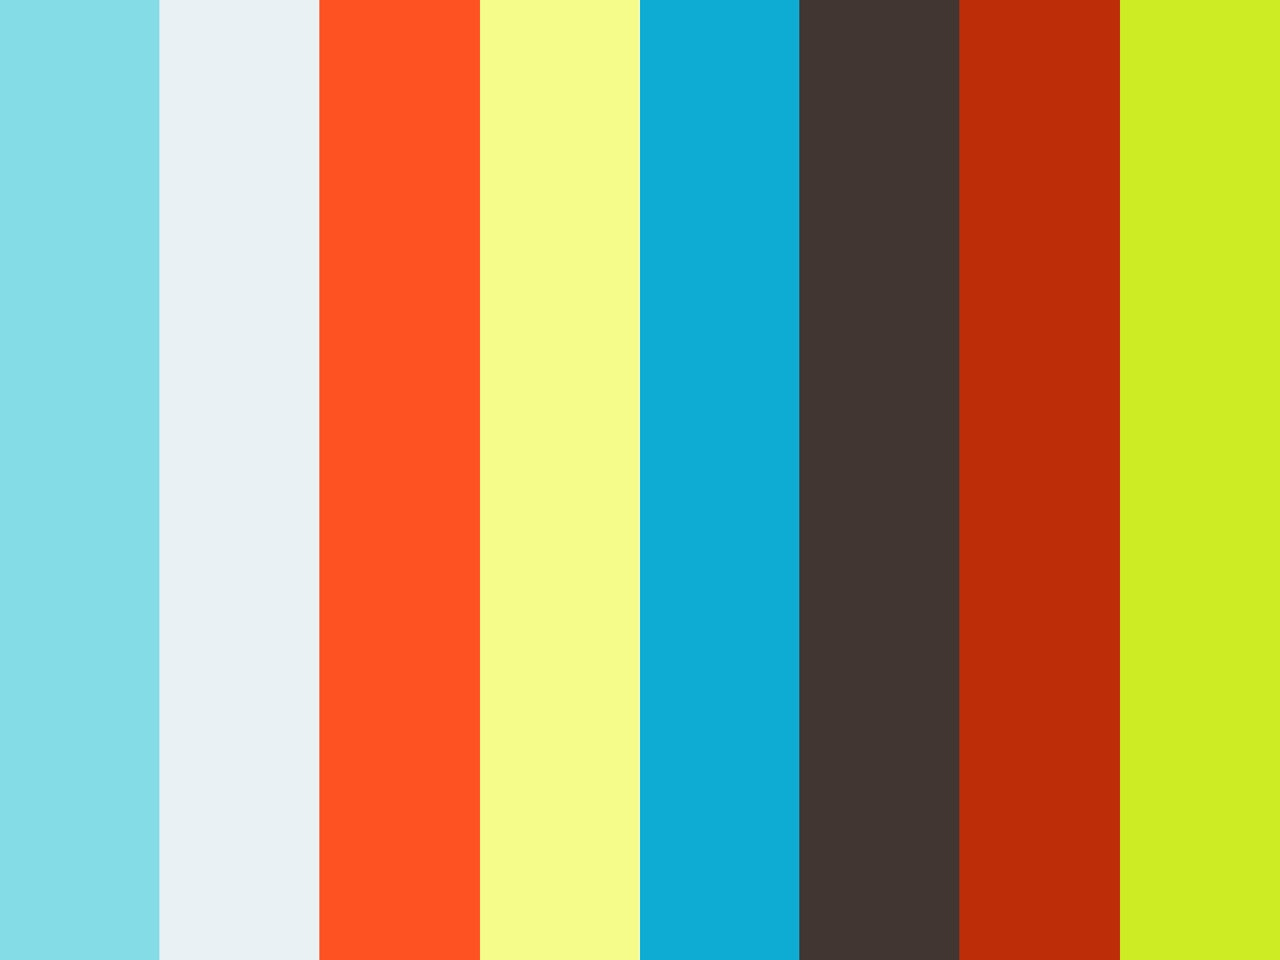 Town Of Saugus - Board Of Selectmen - December 9, 2015